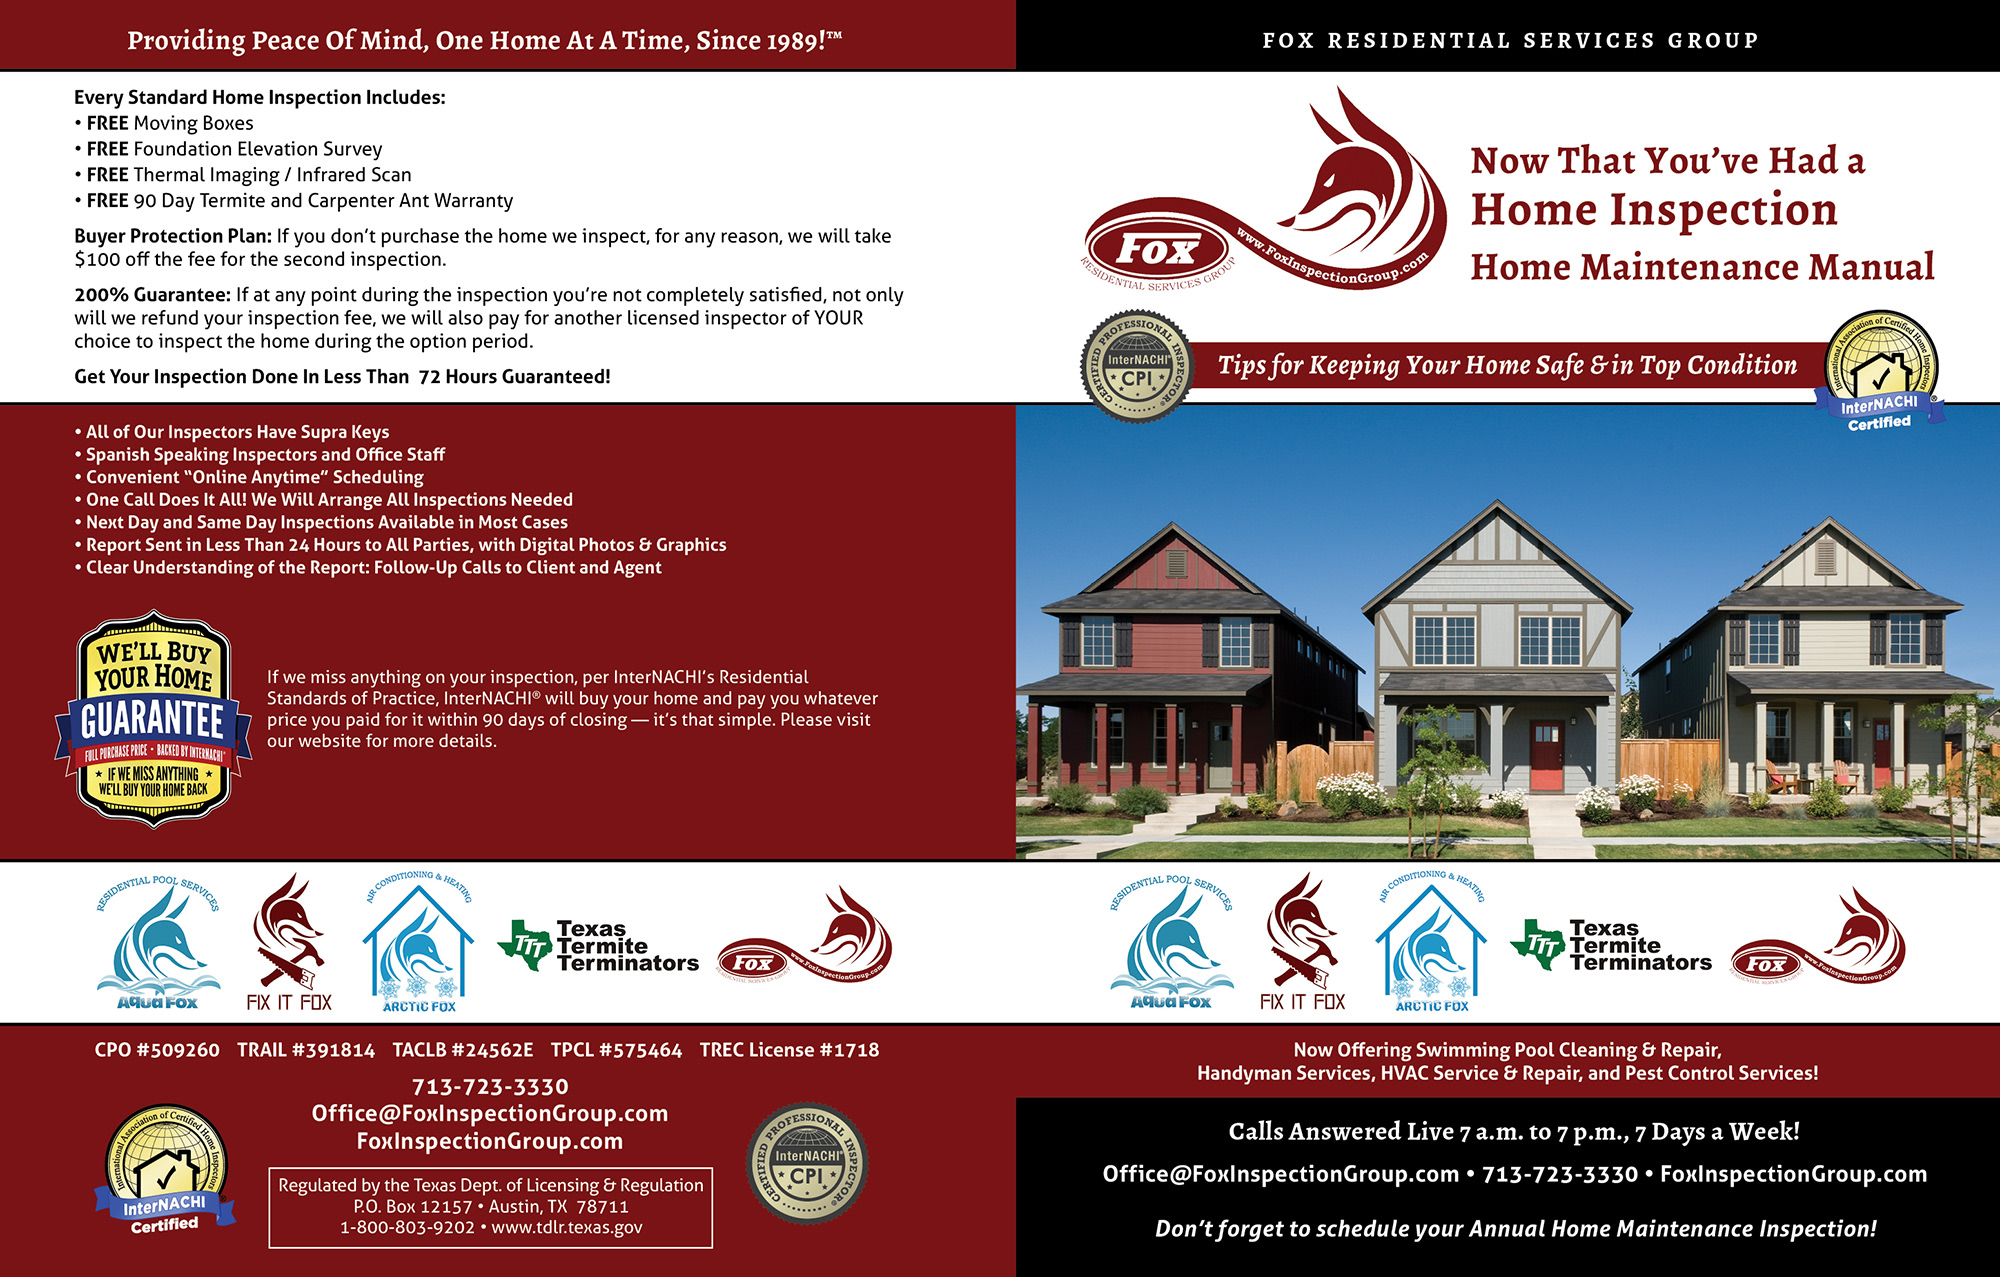 Custom Home Maintenance Book for Fox Residential Services Group